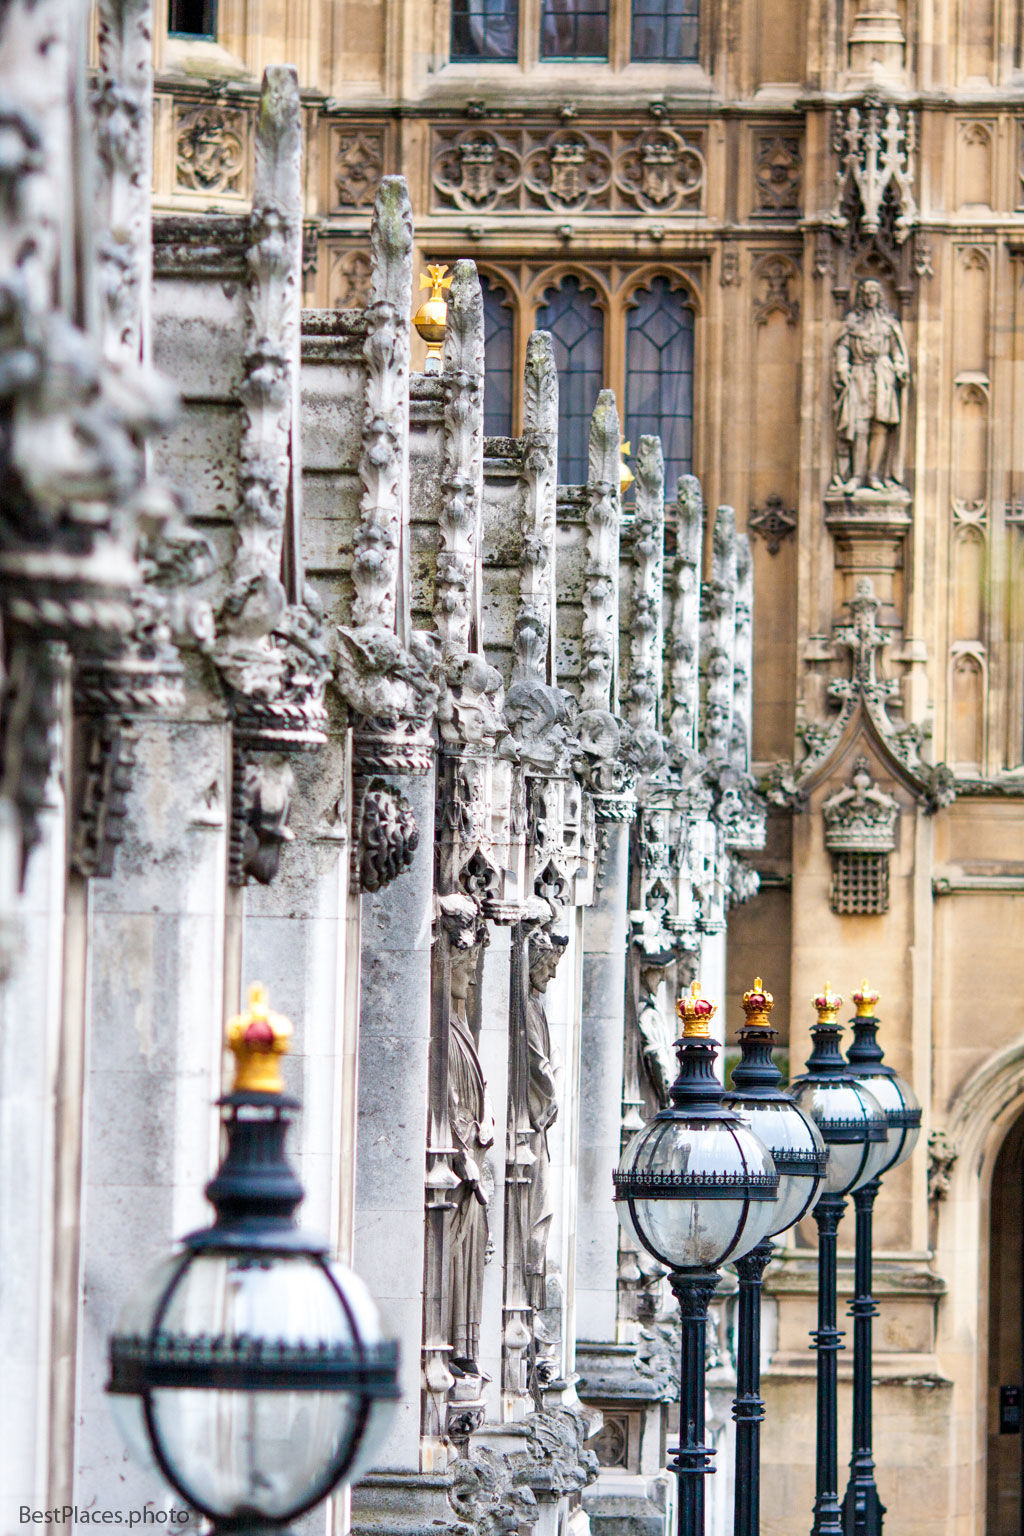 Westminster Palace Facade Goblins and Lamps